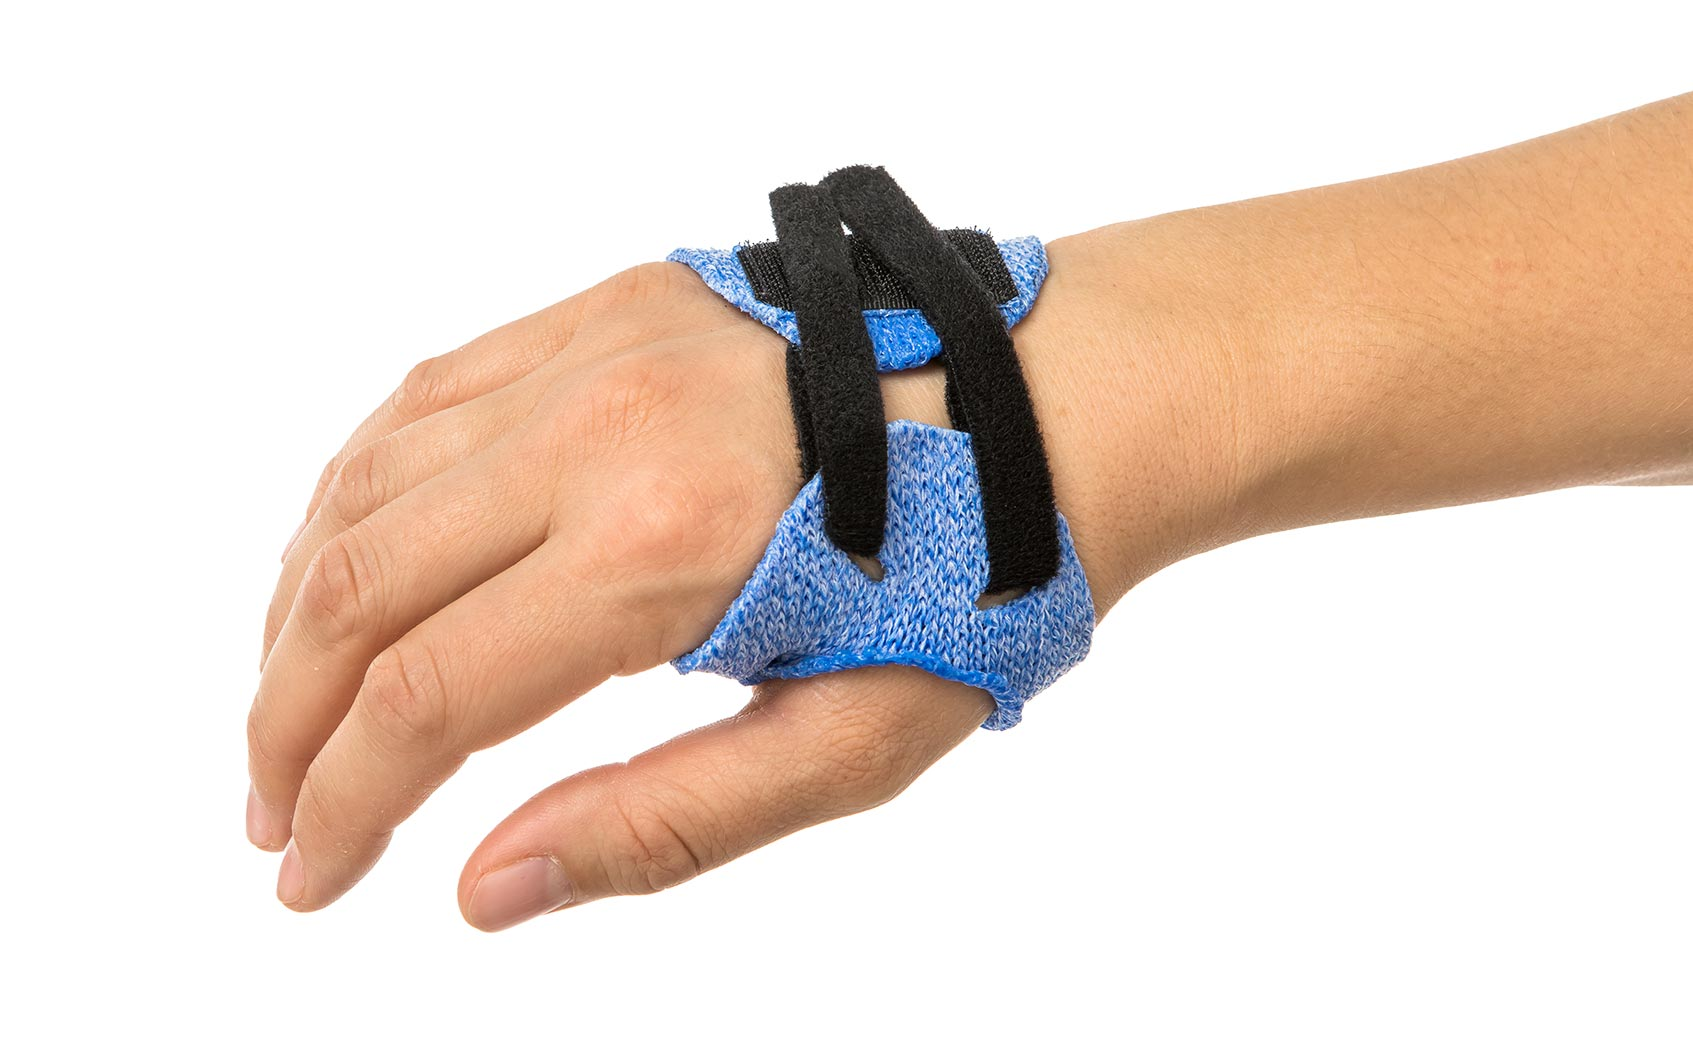 Blue Orficast orthosis with hook-and-loop strapping